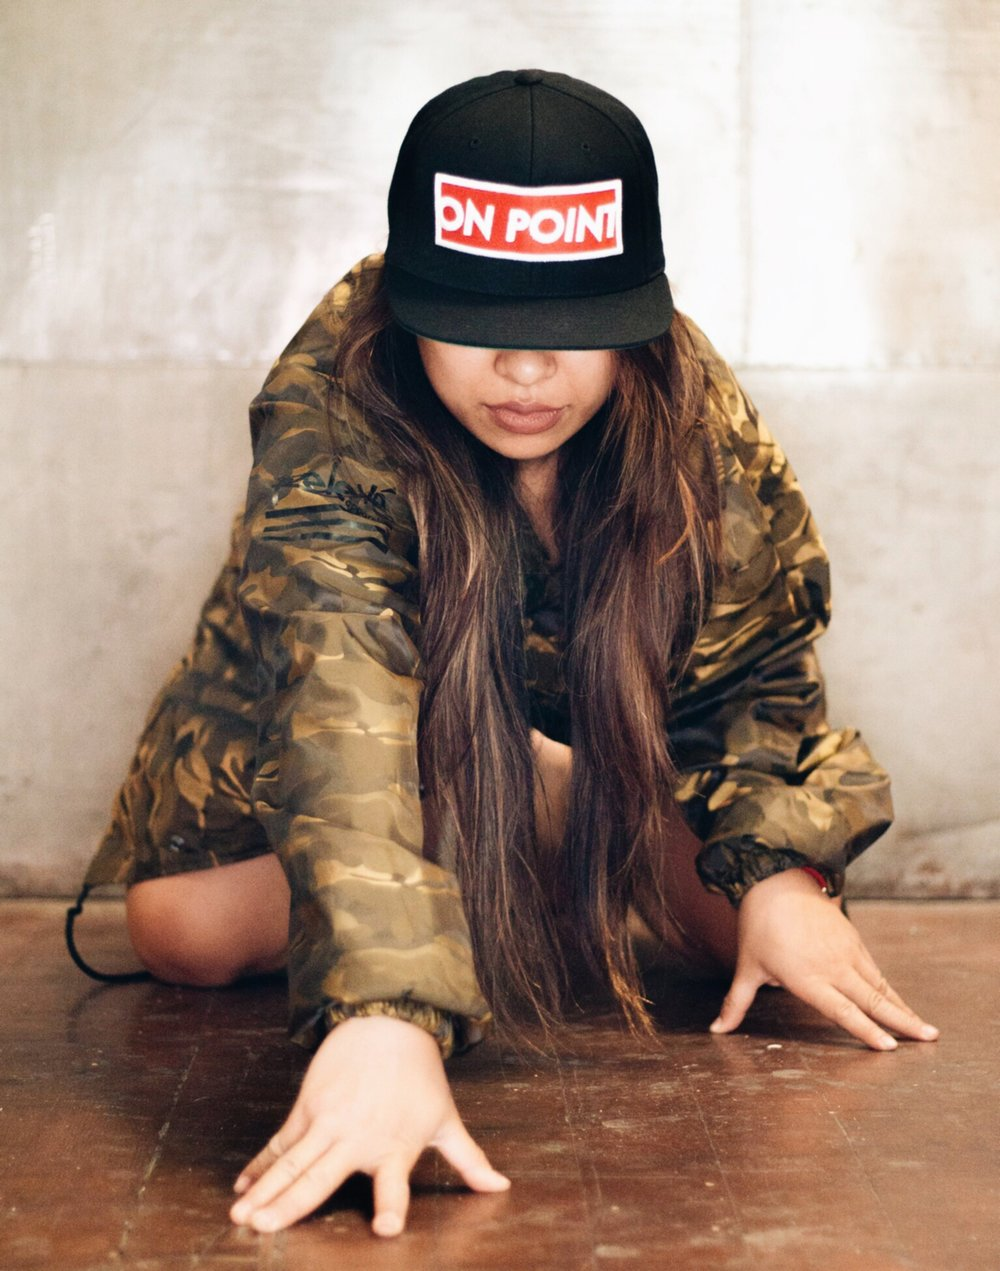 Shown: Gold Camo Jacket • On Point Snapback